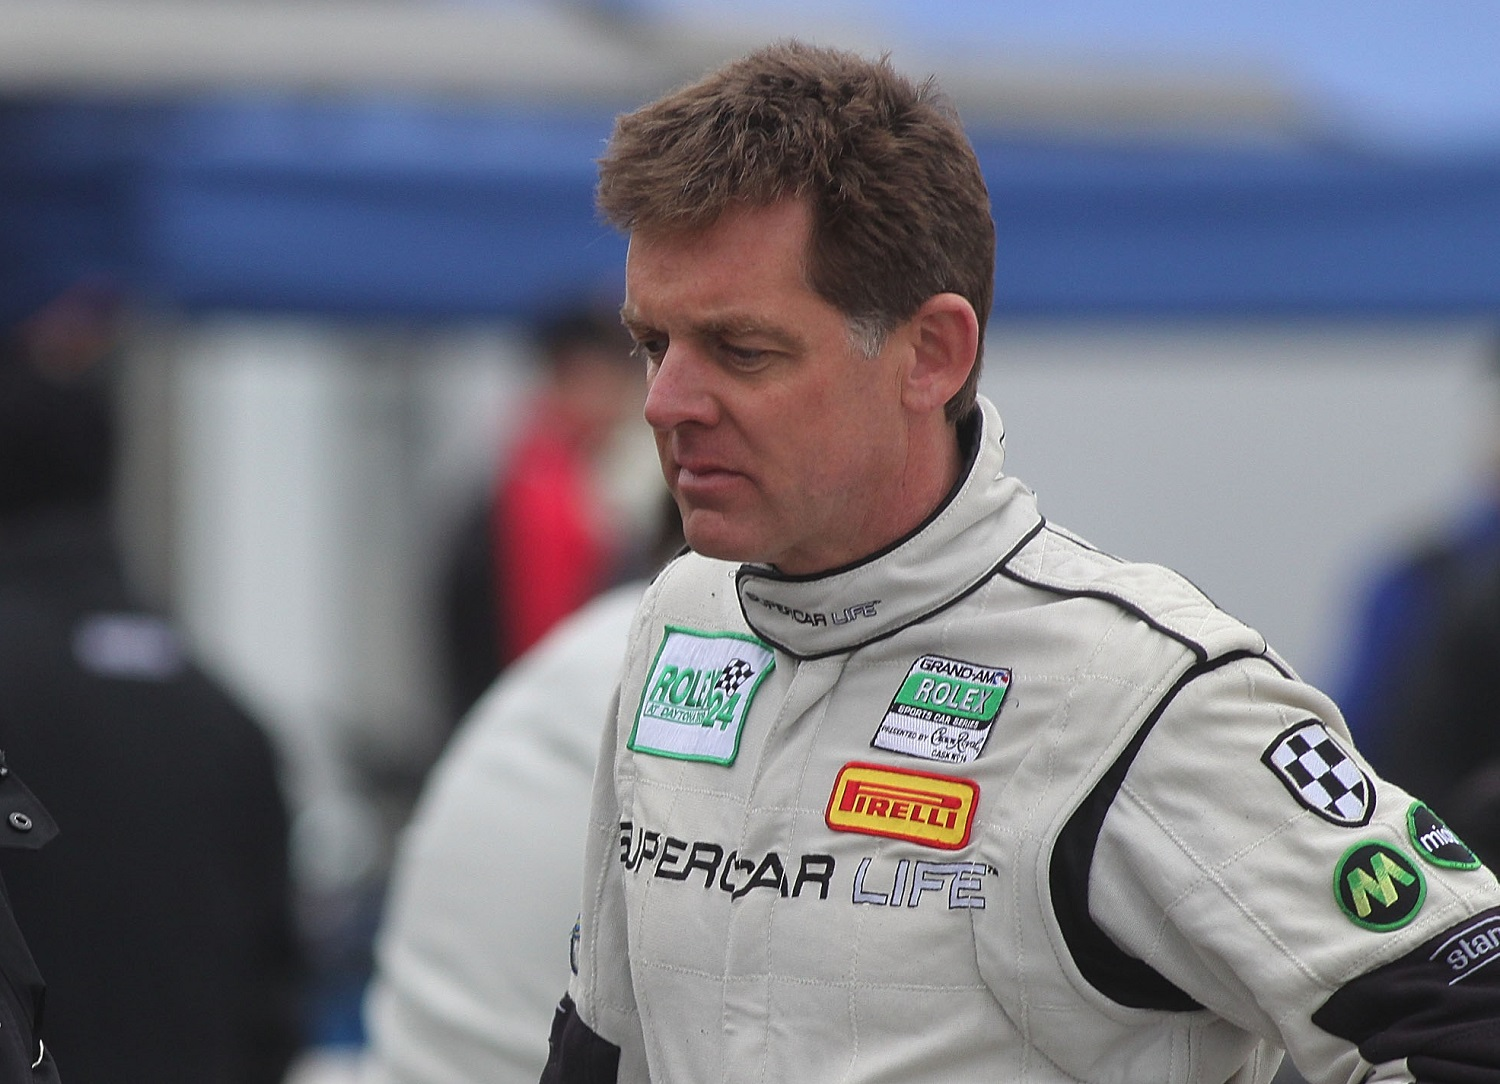 Scott Tucker was sentenced to terms in Leavenworth both before and after taking up racing at the age of 44 and becoming wildly successful in the Le Mans Series. | Brian Cleary/Getty Images